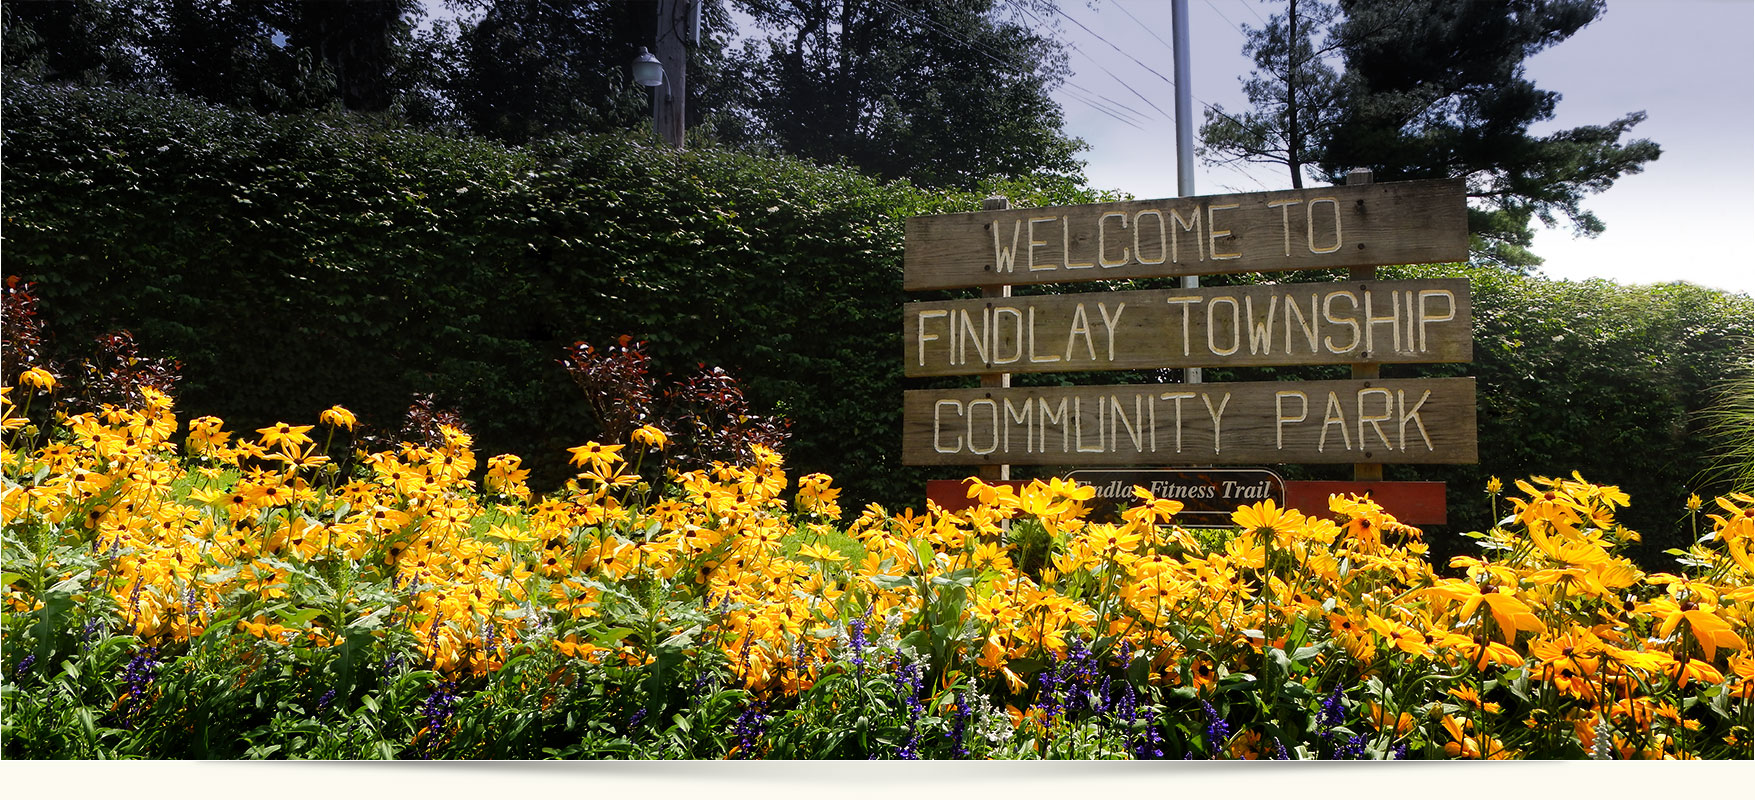 findlay township pa official website - Clinton Pa Christmas Lights